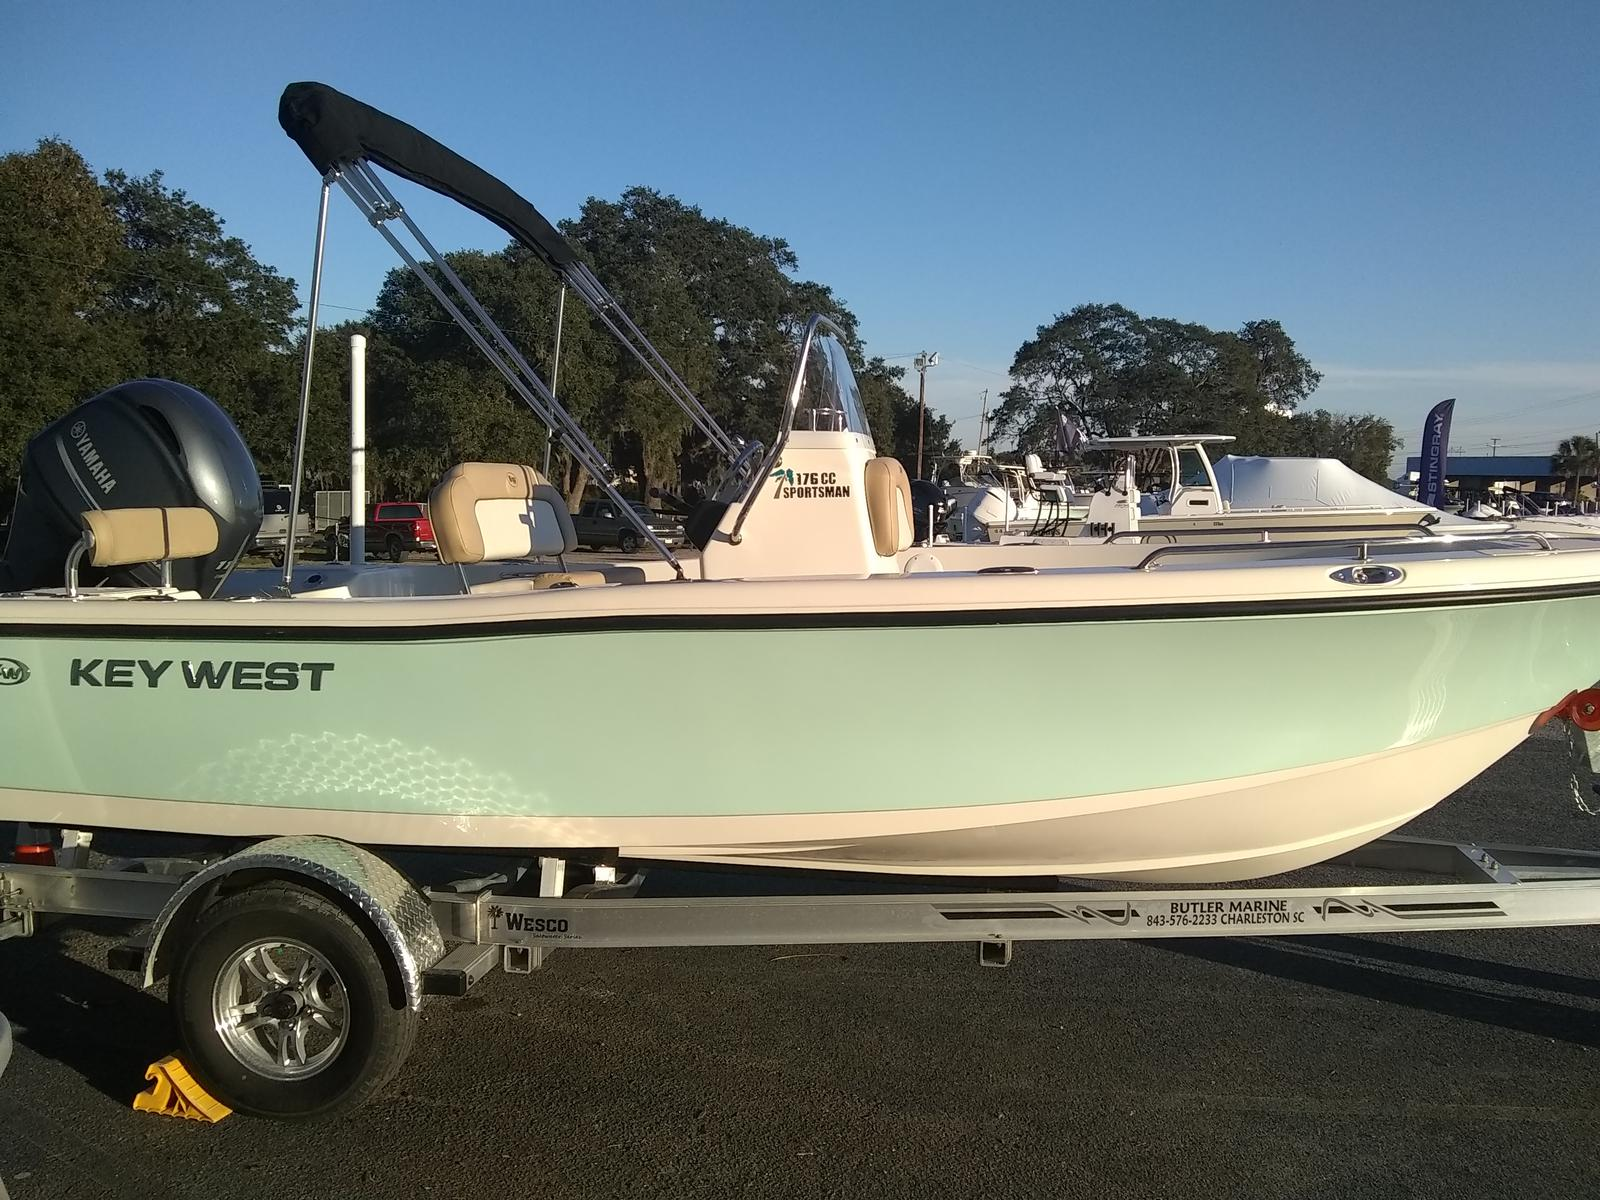 2018 key west boats inc 176cc for sale in charleston sc butler 2018 key west boats inc 176cc for sale in charleston sc butler marine charleston 843 576 2233 asfbconference2016 Gallery